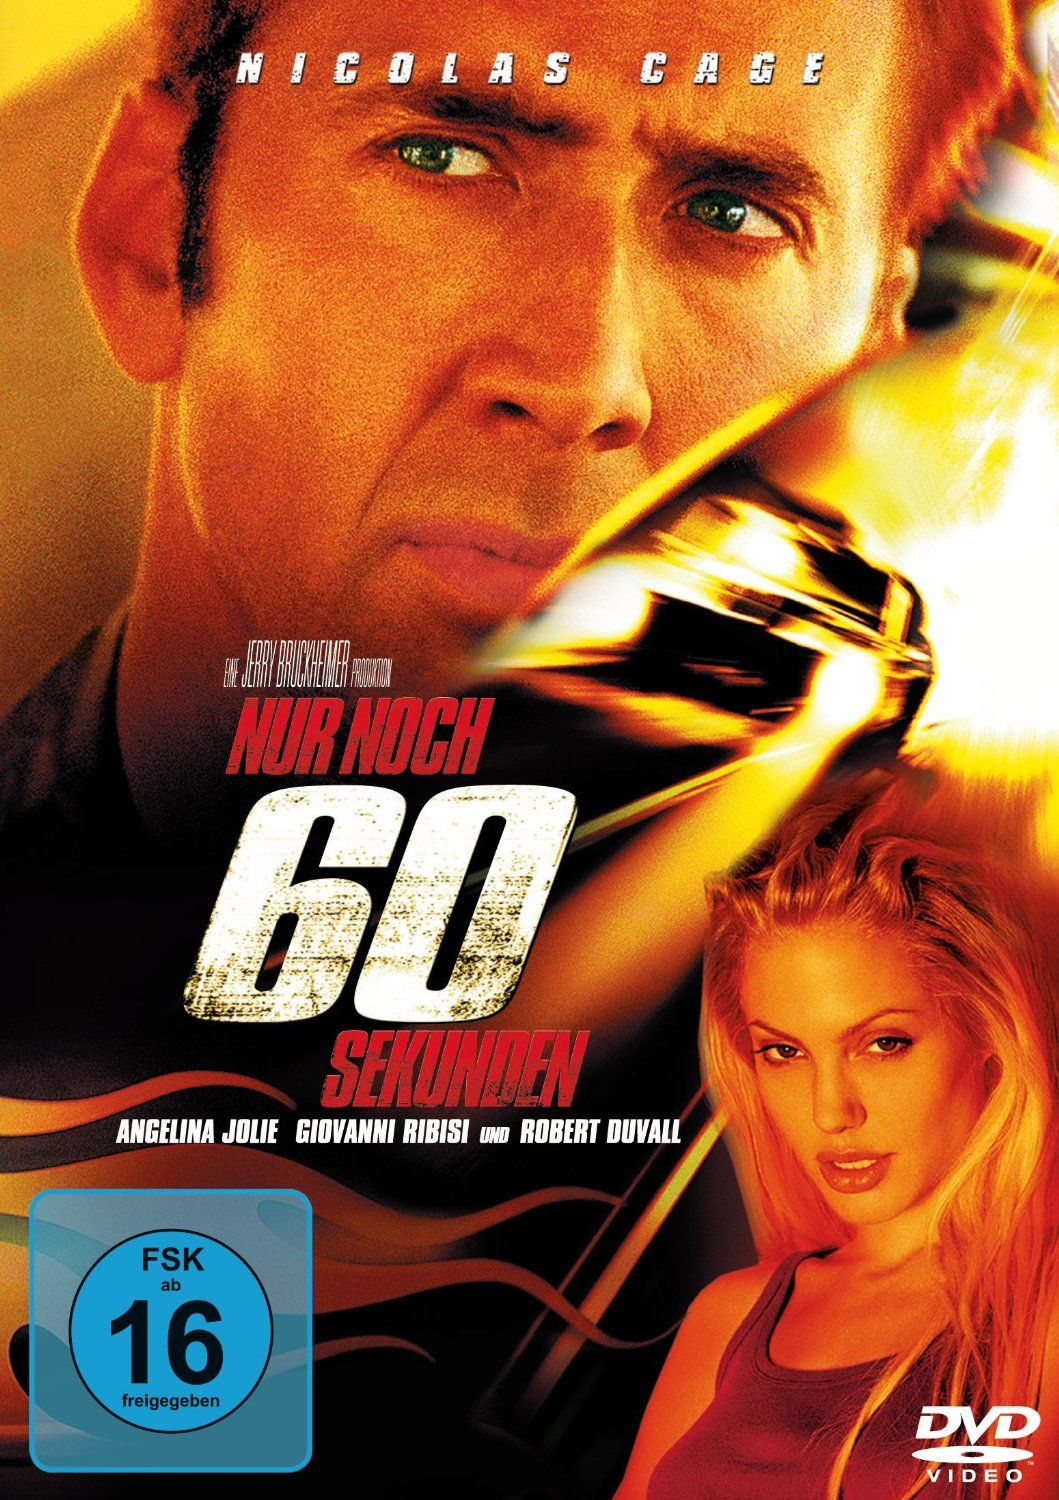 The Beautiful Us Crime Drama Thriller Film Gone In Sixty Seconds Stars Nicolas Cage Angelina Jolie Gio Gone In 60 Seconds Internet Movies Streaming Movies